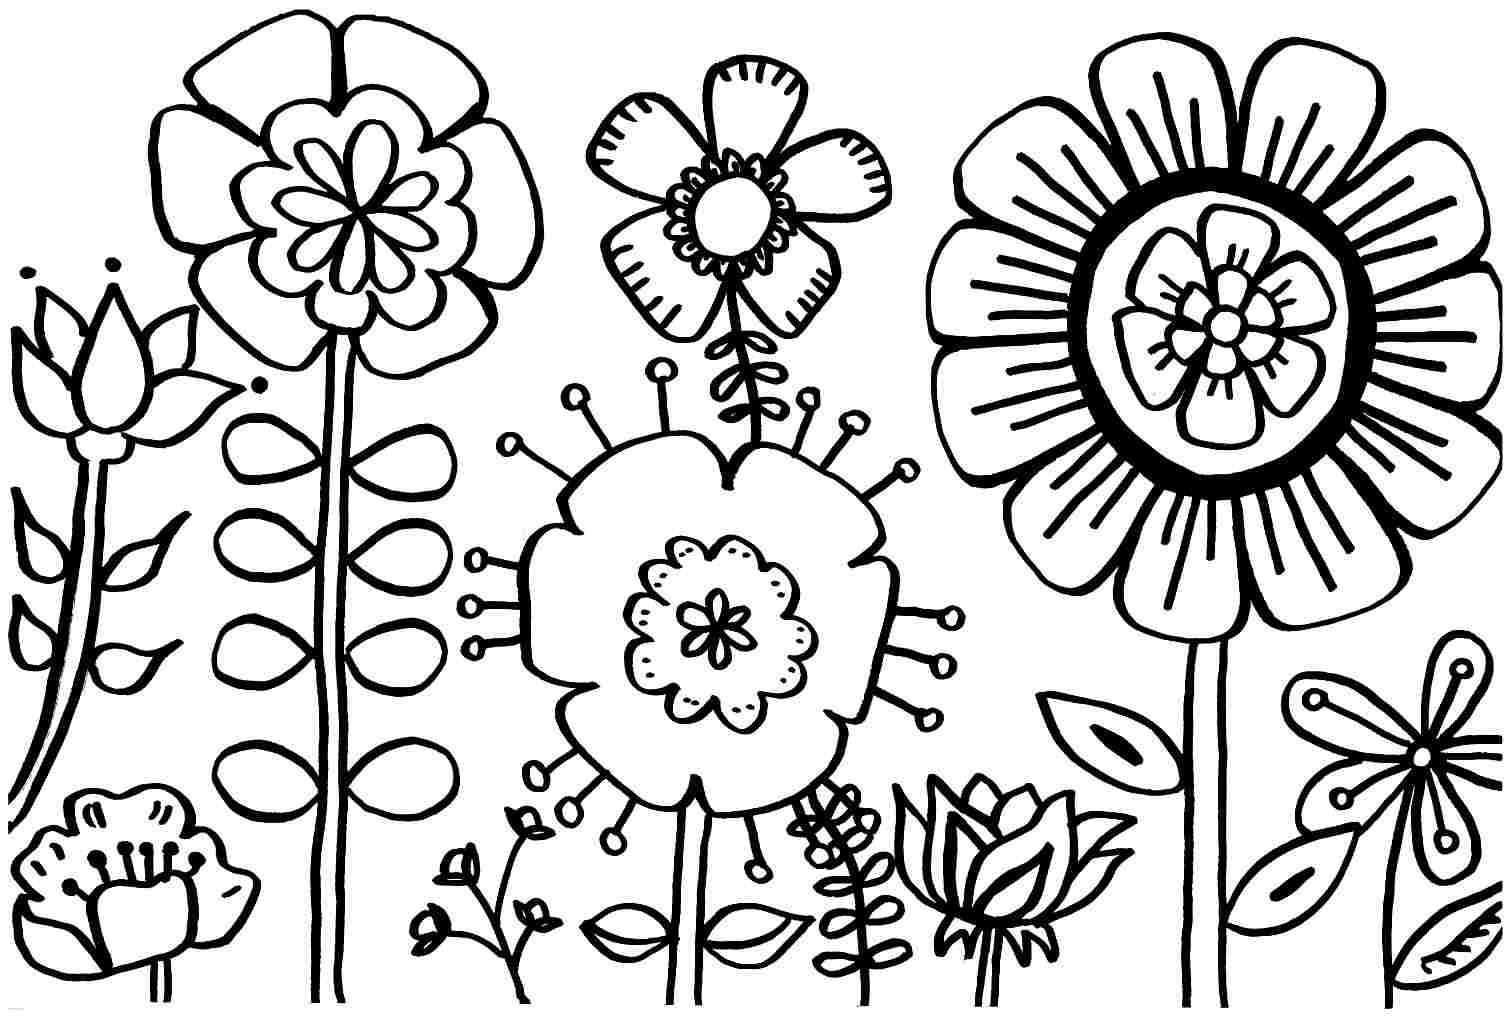 Spring Flower Coloring Pages Bing Images Spring Coloring Pages Printable Flower Coloring Pages Flower Coloring Pages